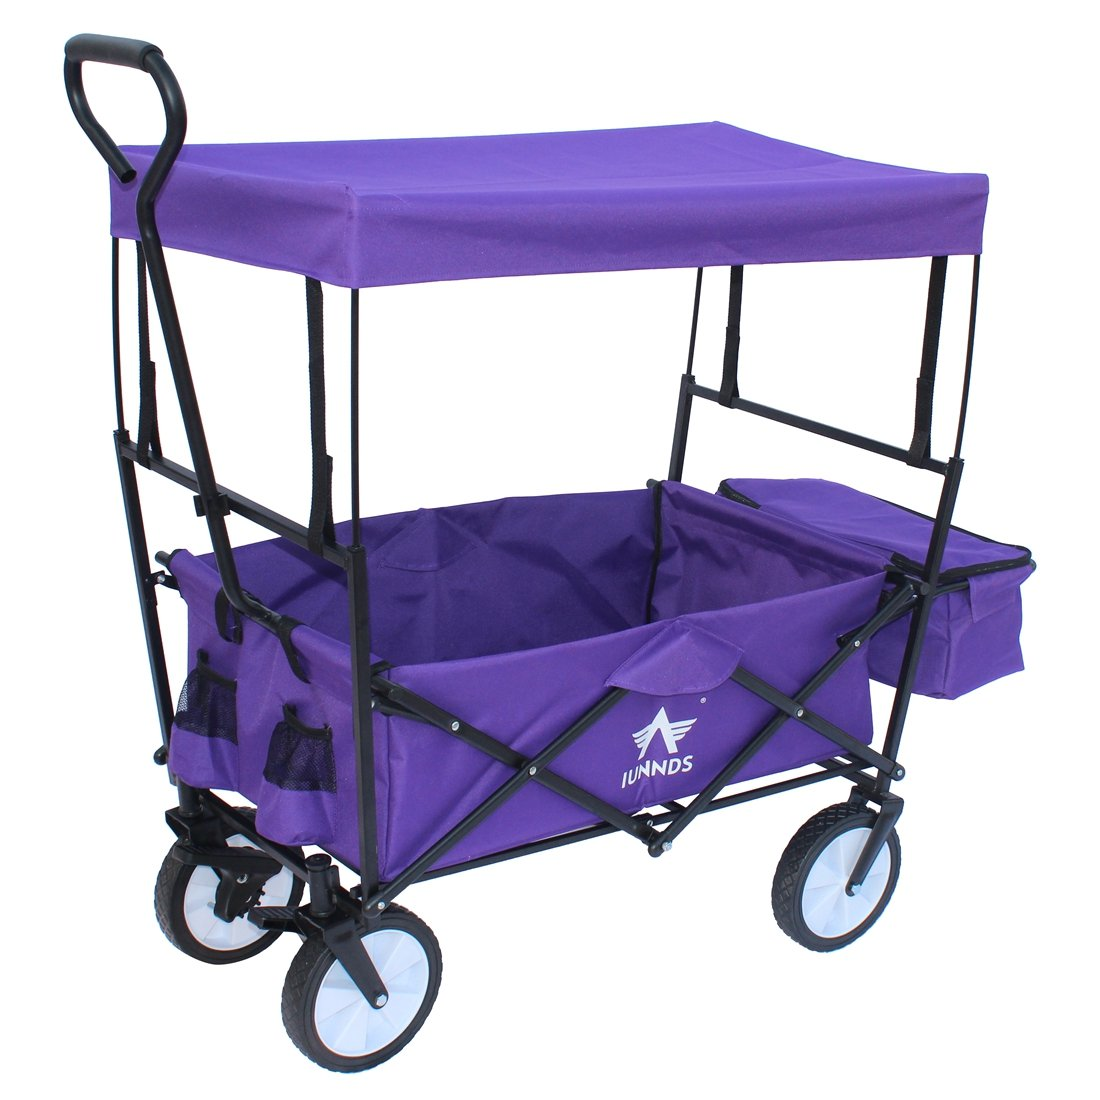 Sports God Folding Wagon Collapsible Utility Graden Cart with Removable Canopy + Storage Basket + FREE Cooler (Purple) by Sports God (Image #2)